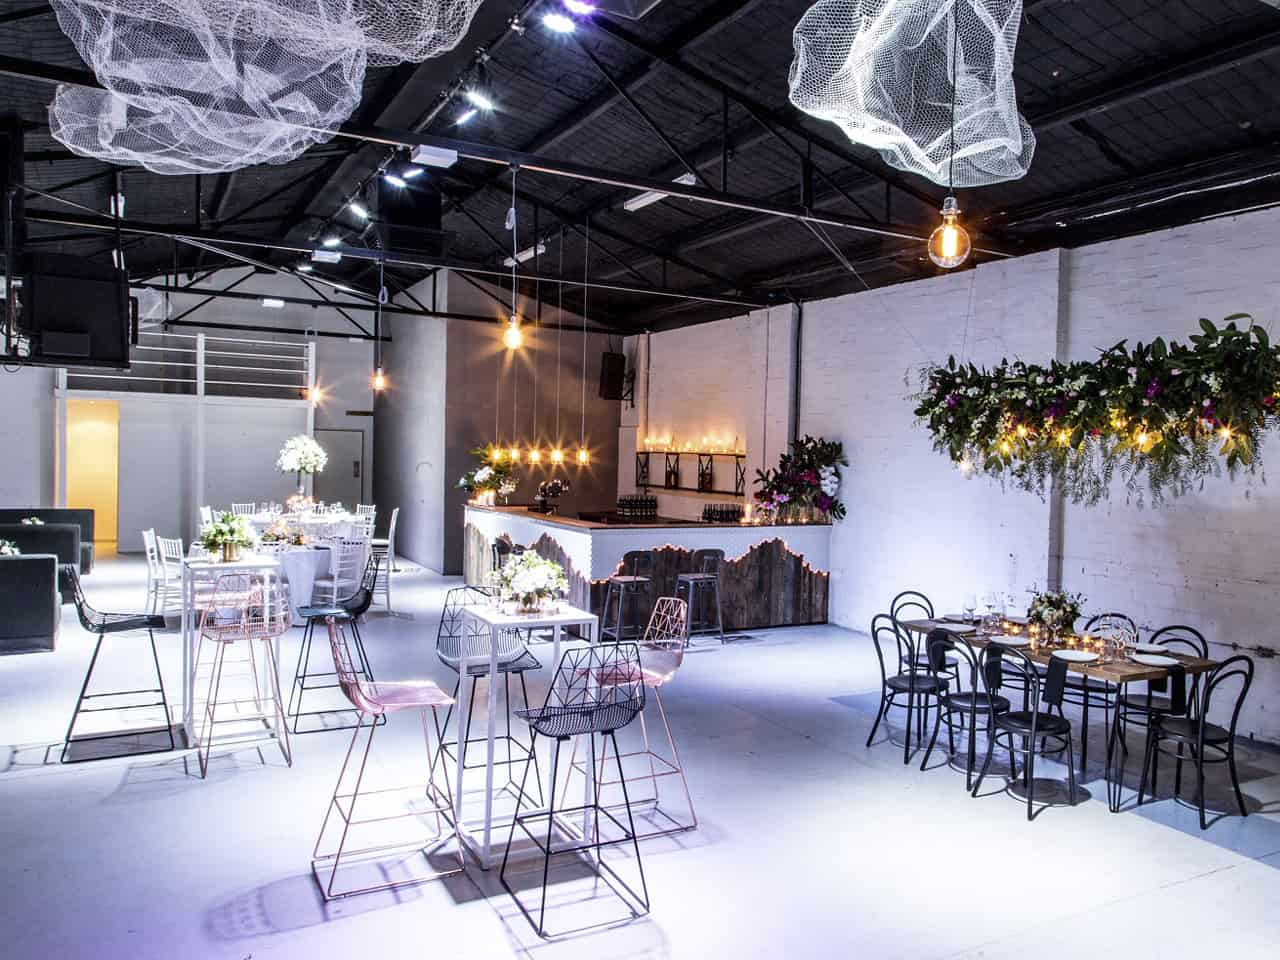 Open space warehouse with bar, tables and seating